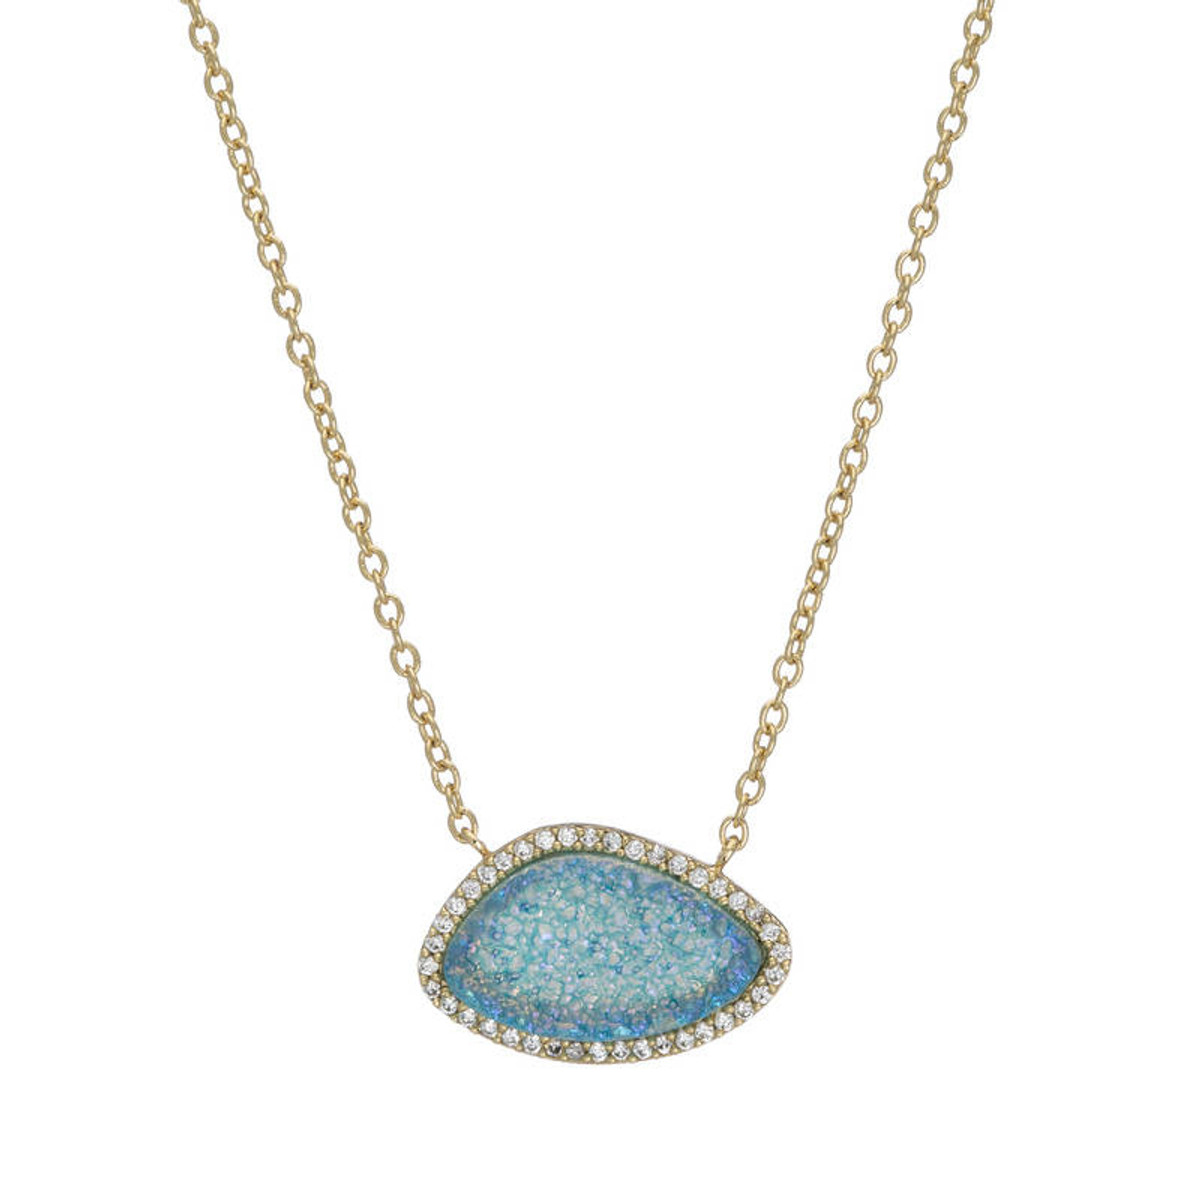 Blue Valencia style necklace by Marcia Moran Jewelry